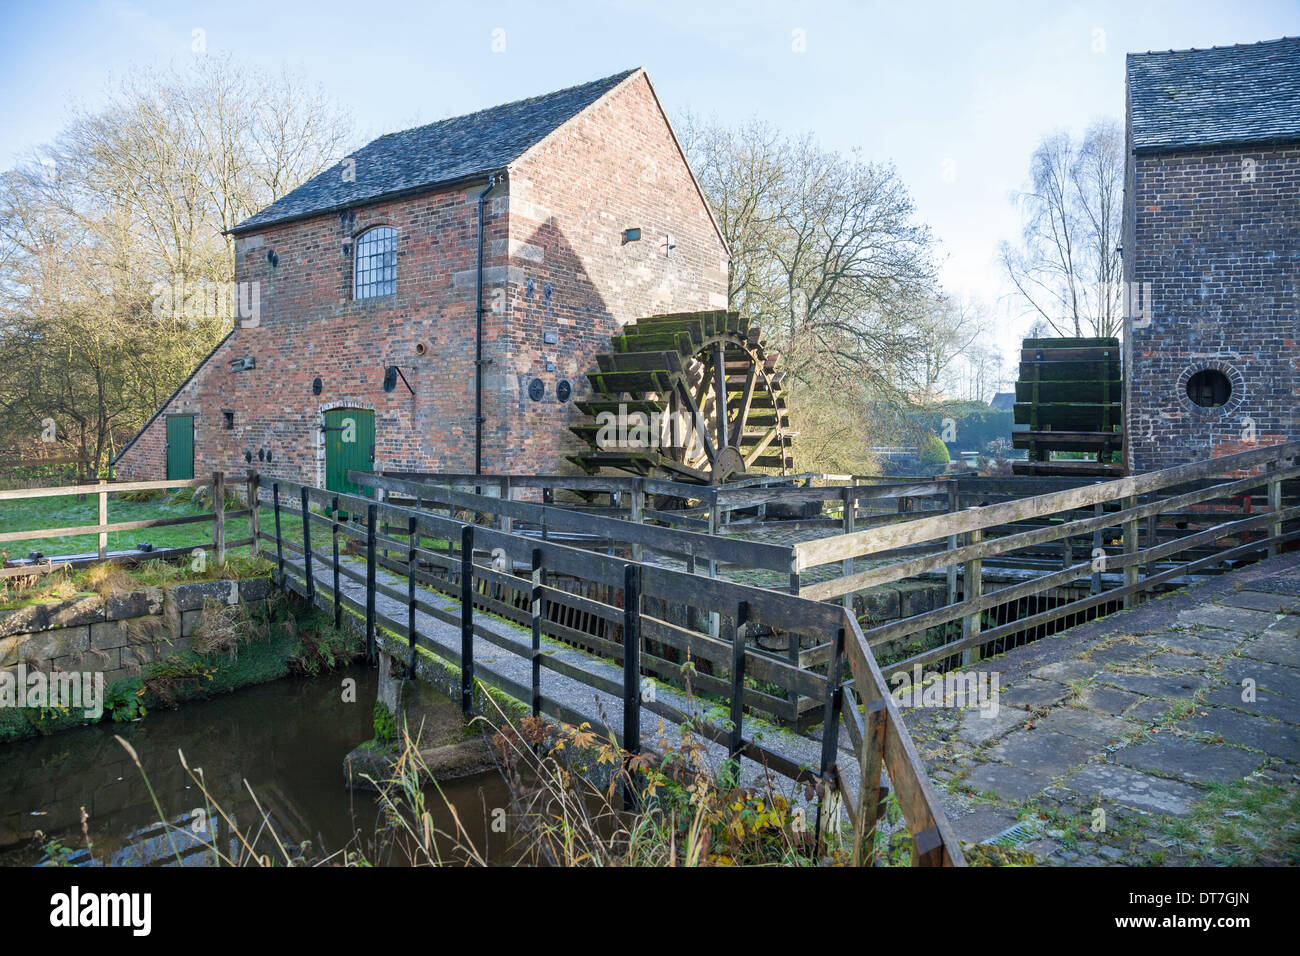 The 2 water wheels of the Cheddleton Flint Mill Cheddleton Staffordshire England UK - Stock Image